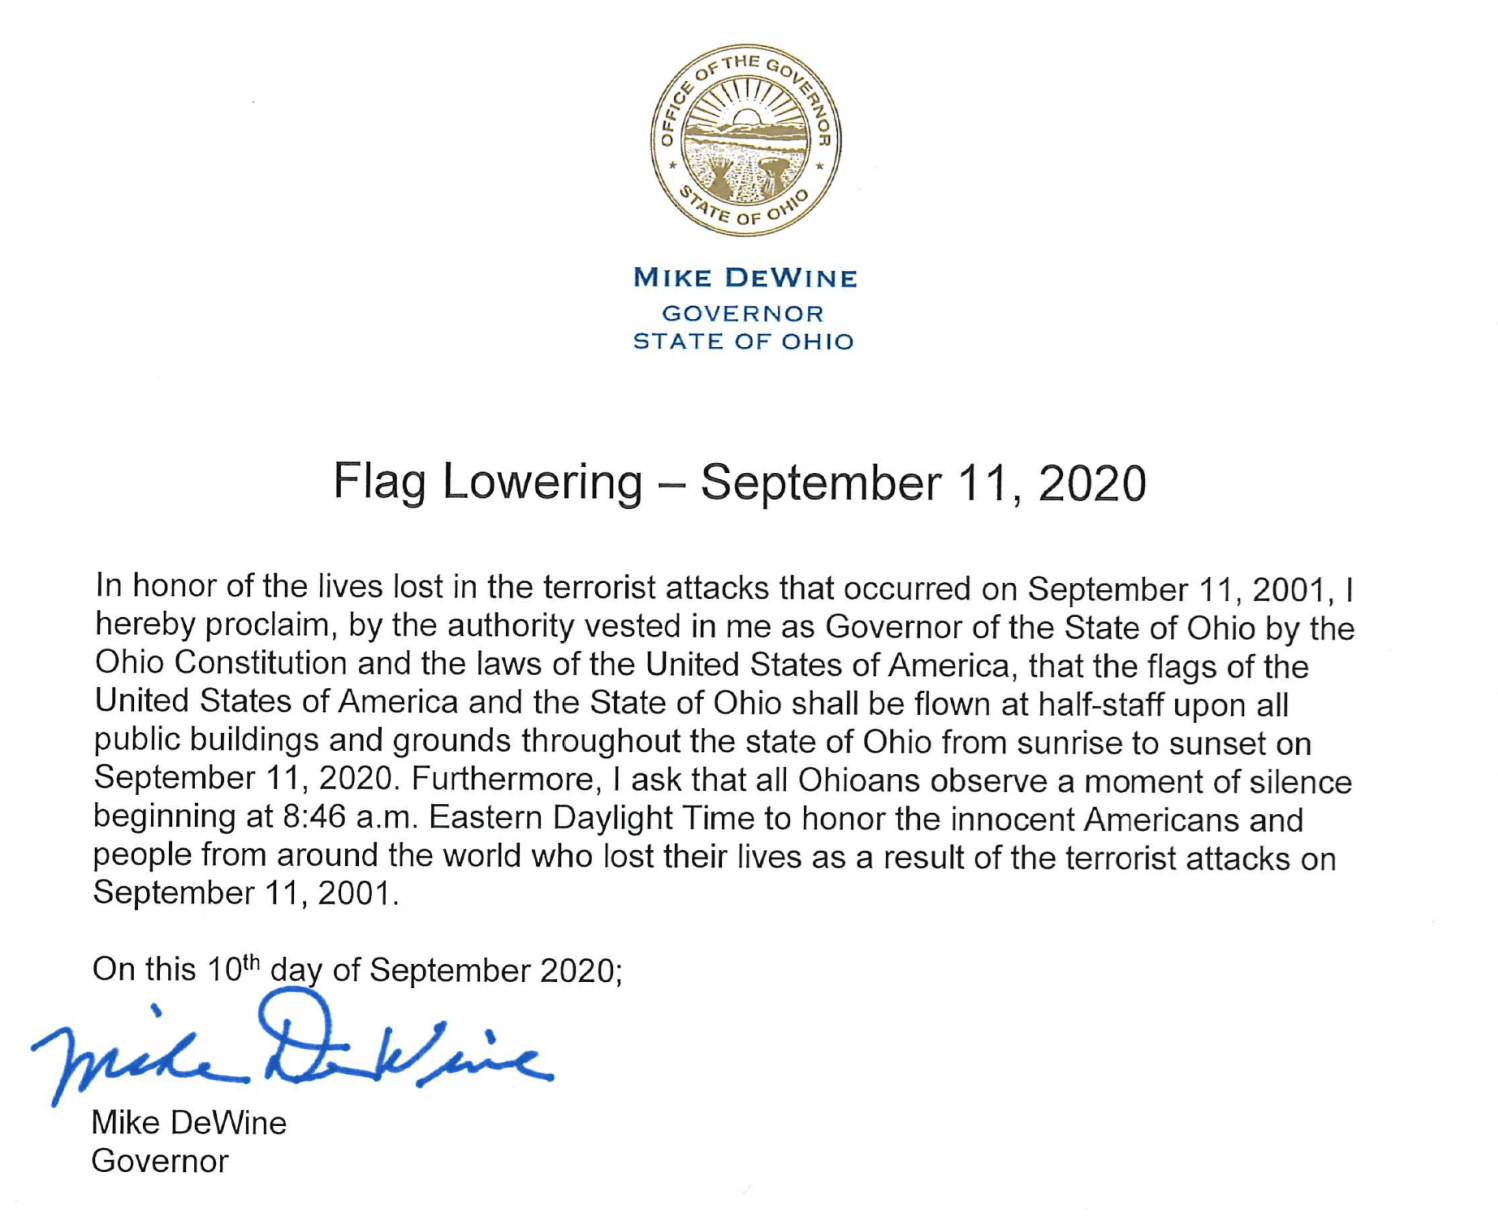 Governor DeWine Patriot Day Flag Order